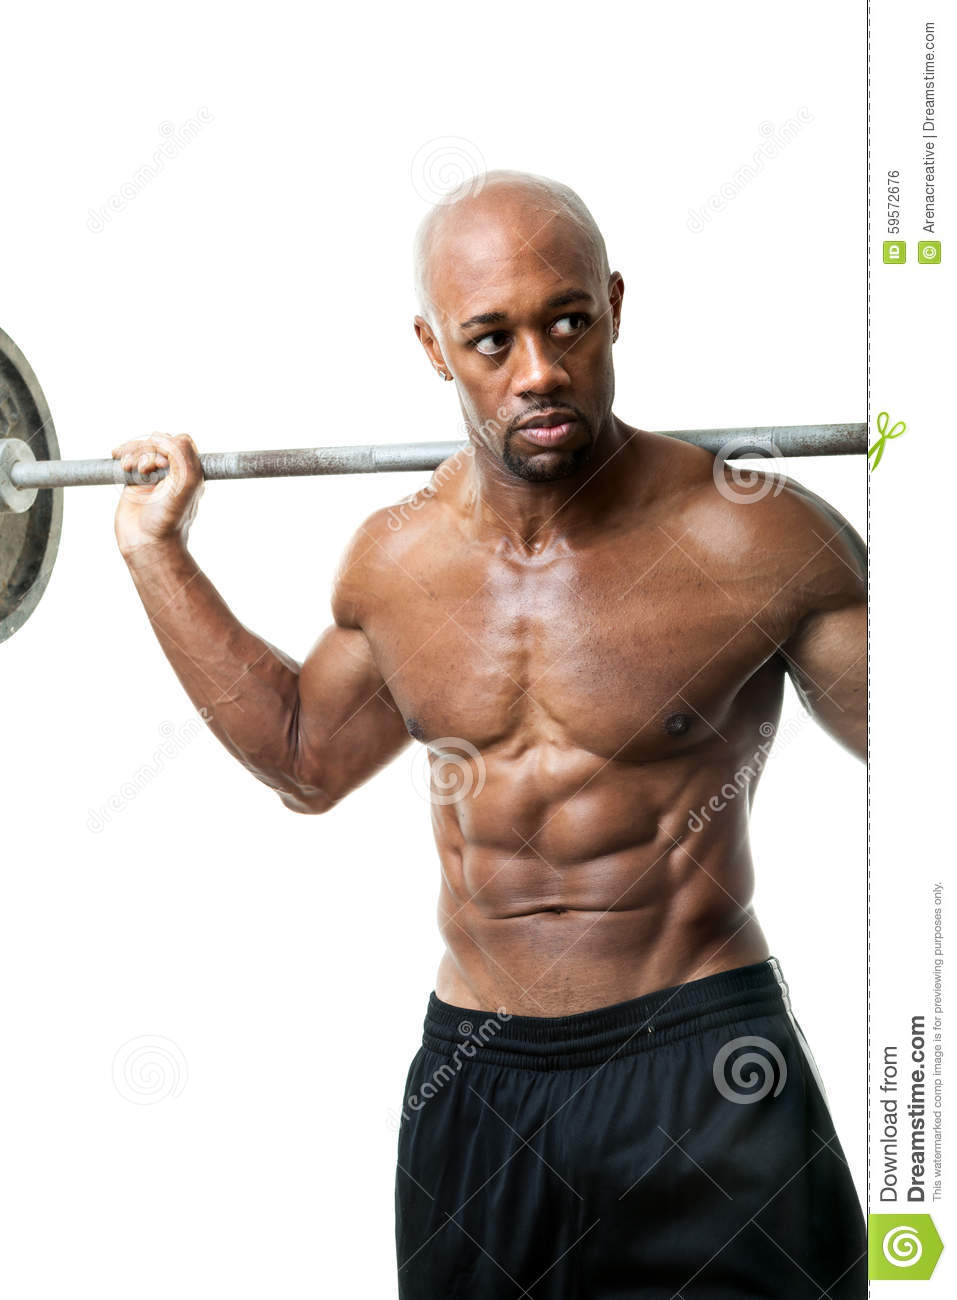 how to fix a ripped muscle